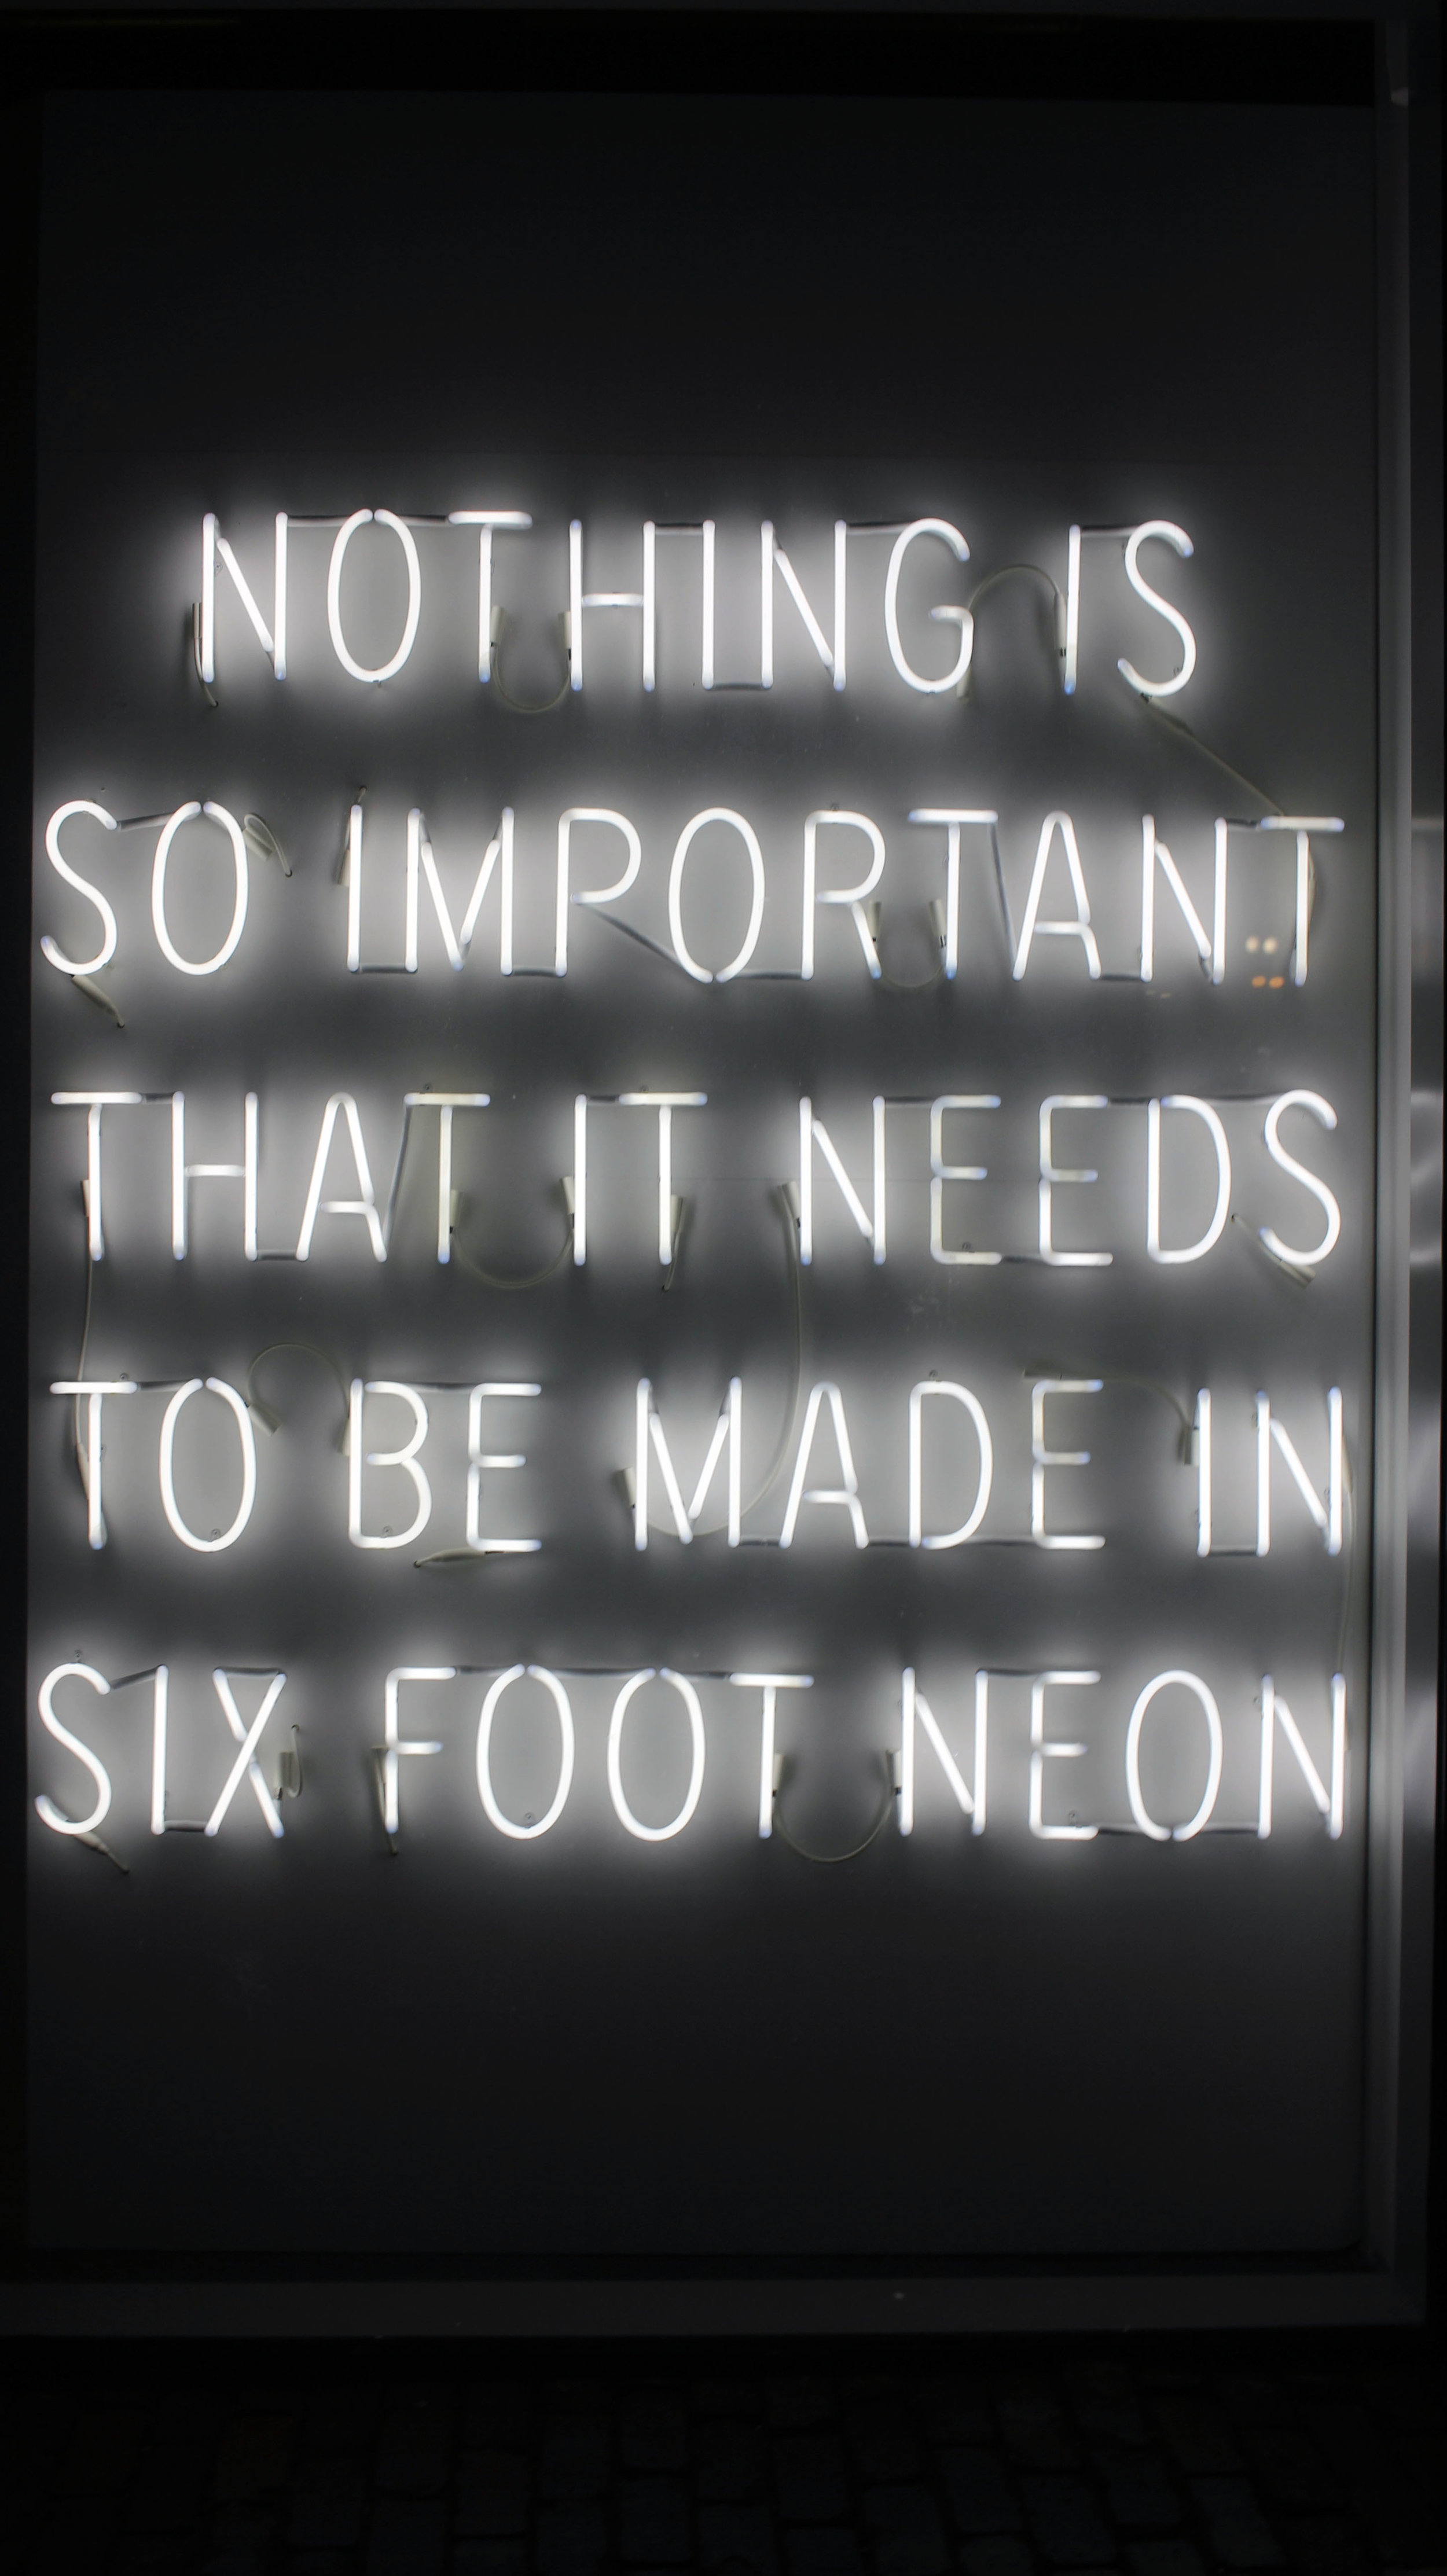 Nothing is so important it needs to be made in six foot neon.